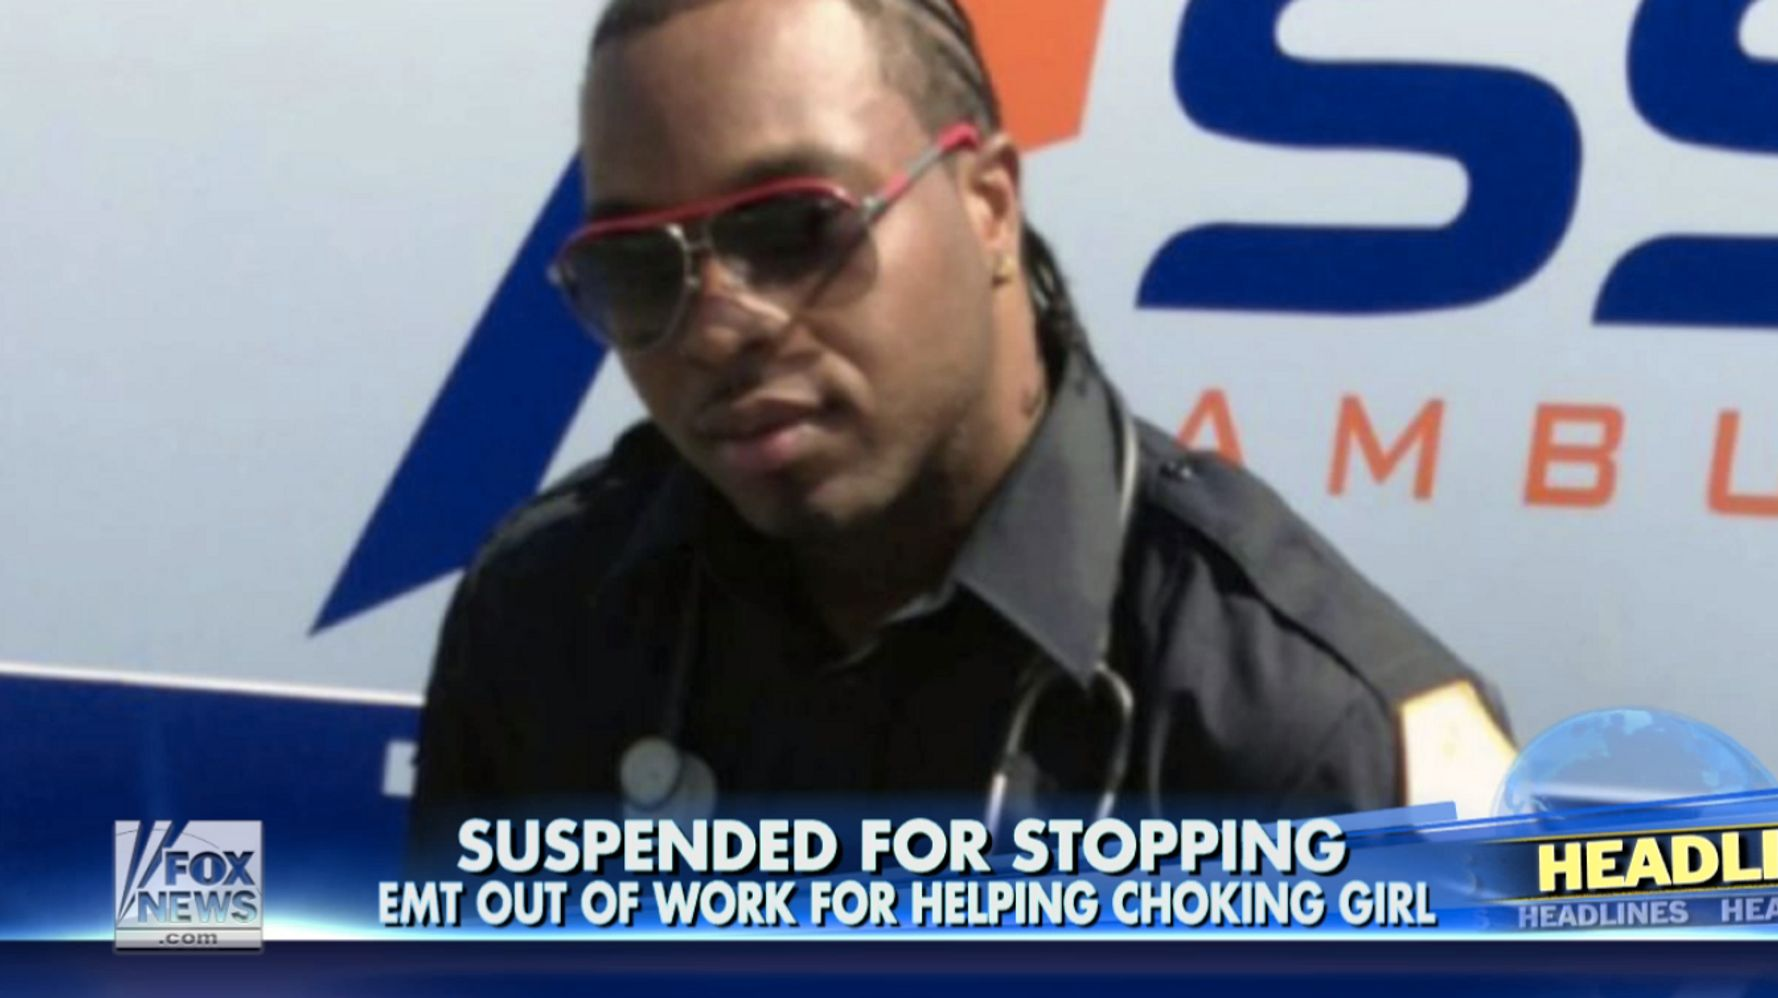 New York EMT Suspended Without Pay After Helping Choking